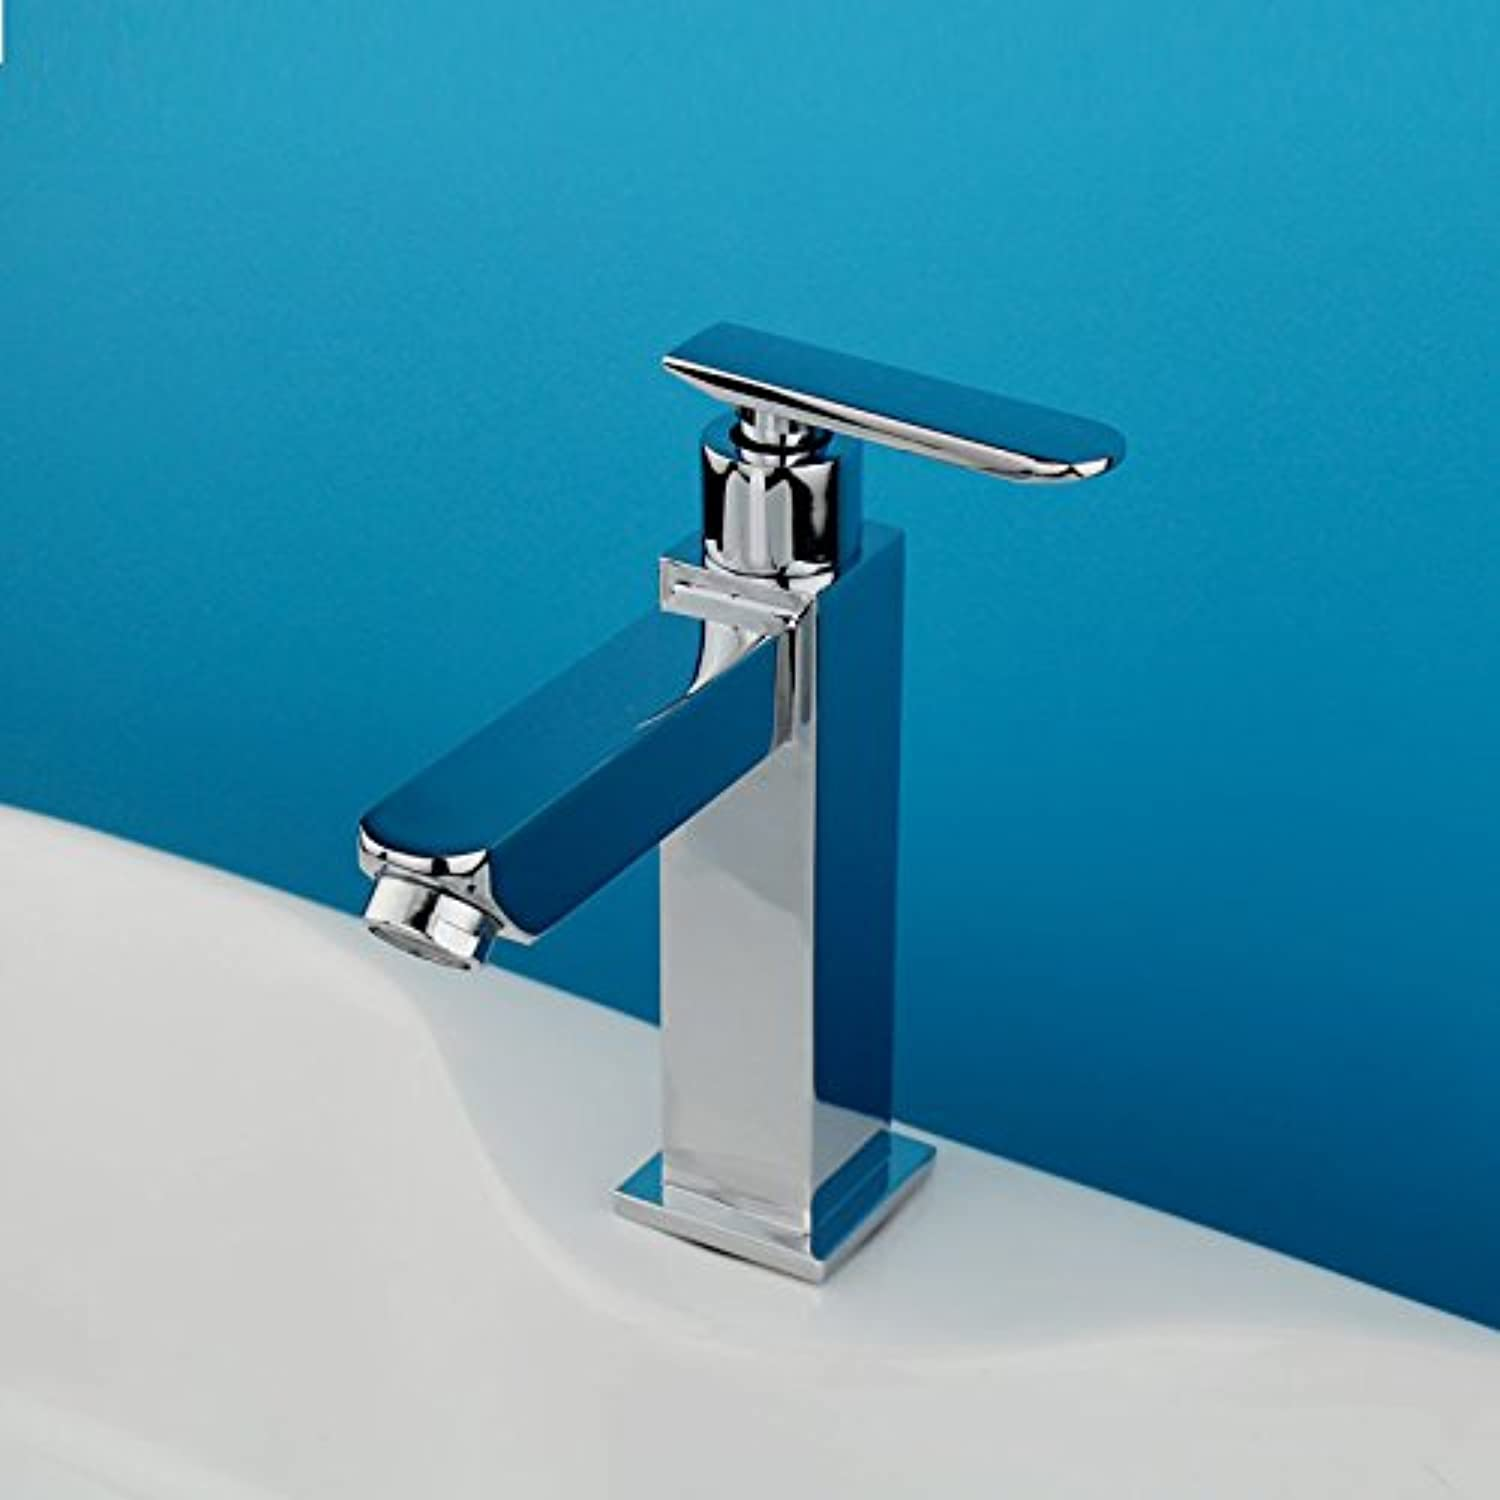 Hlluya Professional Sink Mixer Tap Kitchen Faucet Basin taps, hot and cold,